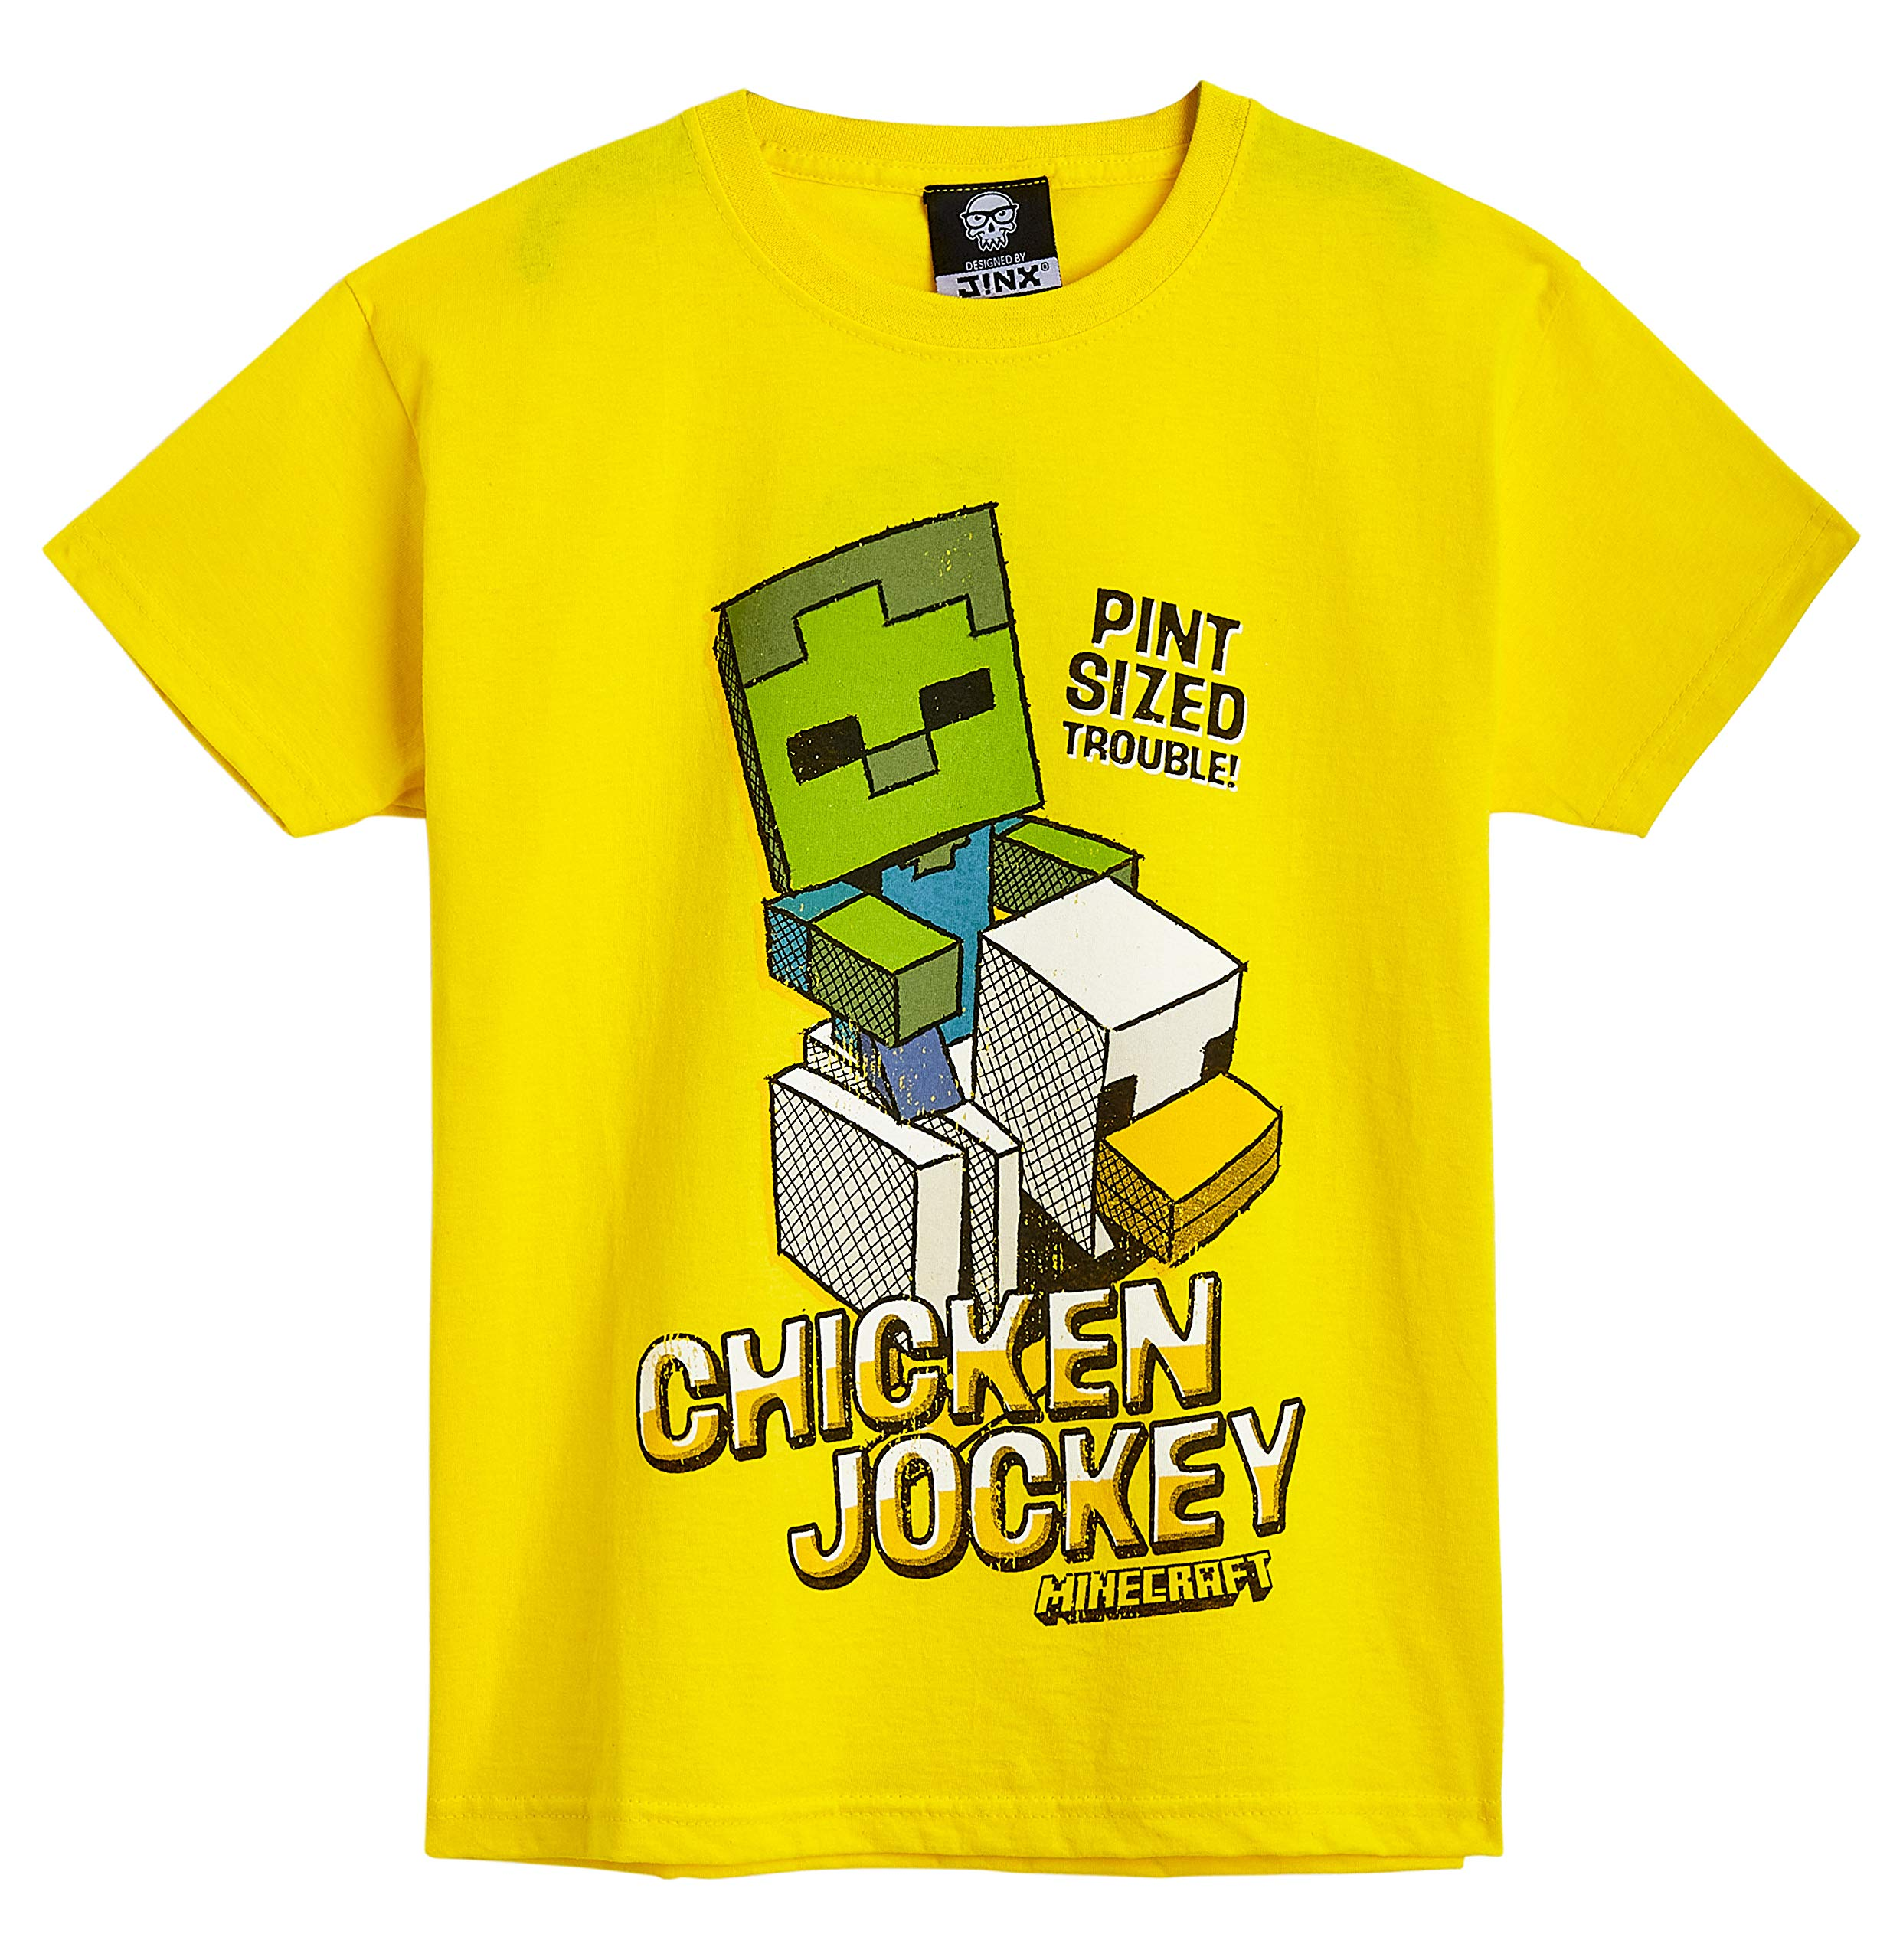 Minecraft Boys T Shirt Official Merchandise Gifts for Boys Age 5-14 Years Fun Graphic T- Shirt with Chicken Jockey Design 100/% Cotton Kids Clothes Short Sleeve Yellow Top